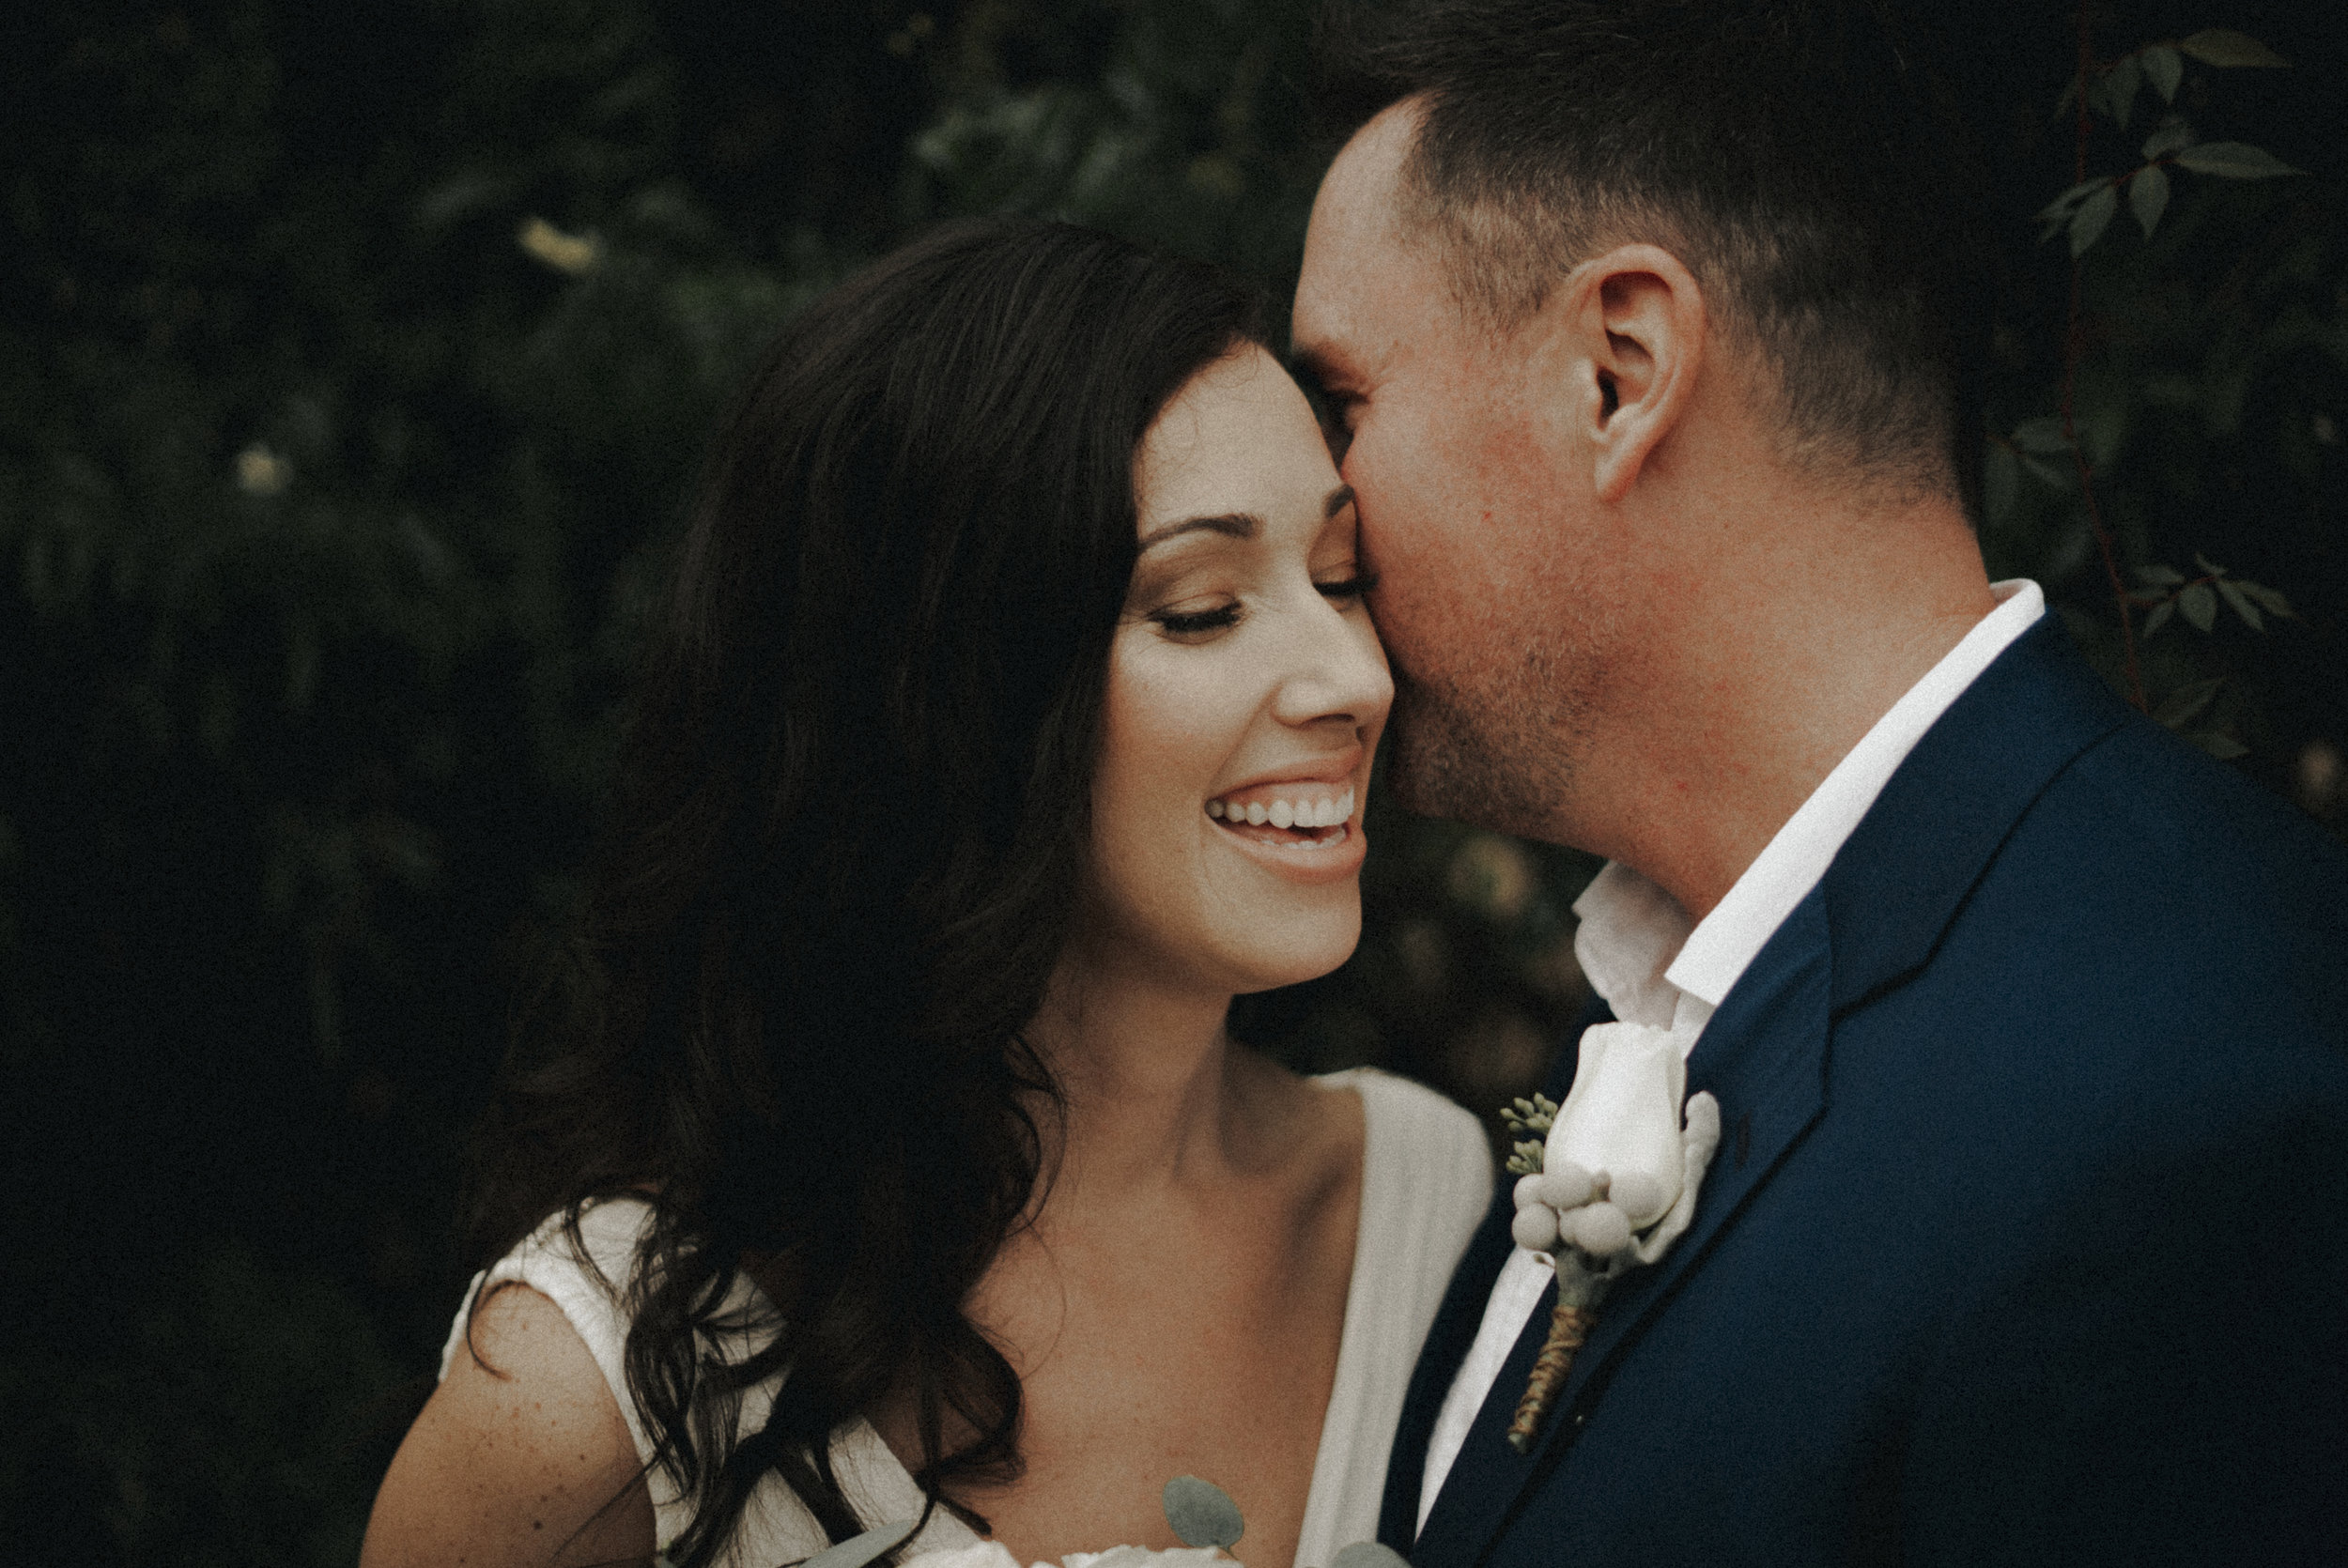 Cecily & tim - A foggy, lovely small wedding at the marina in Dana Point, California